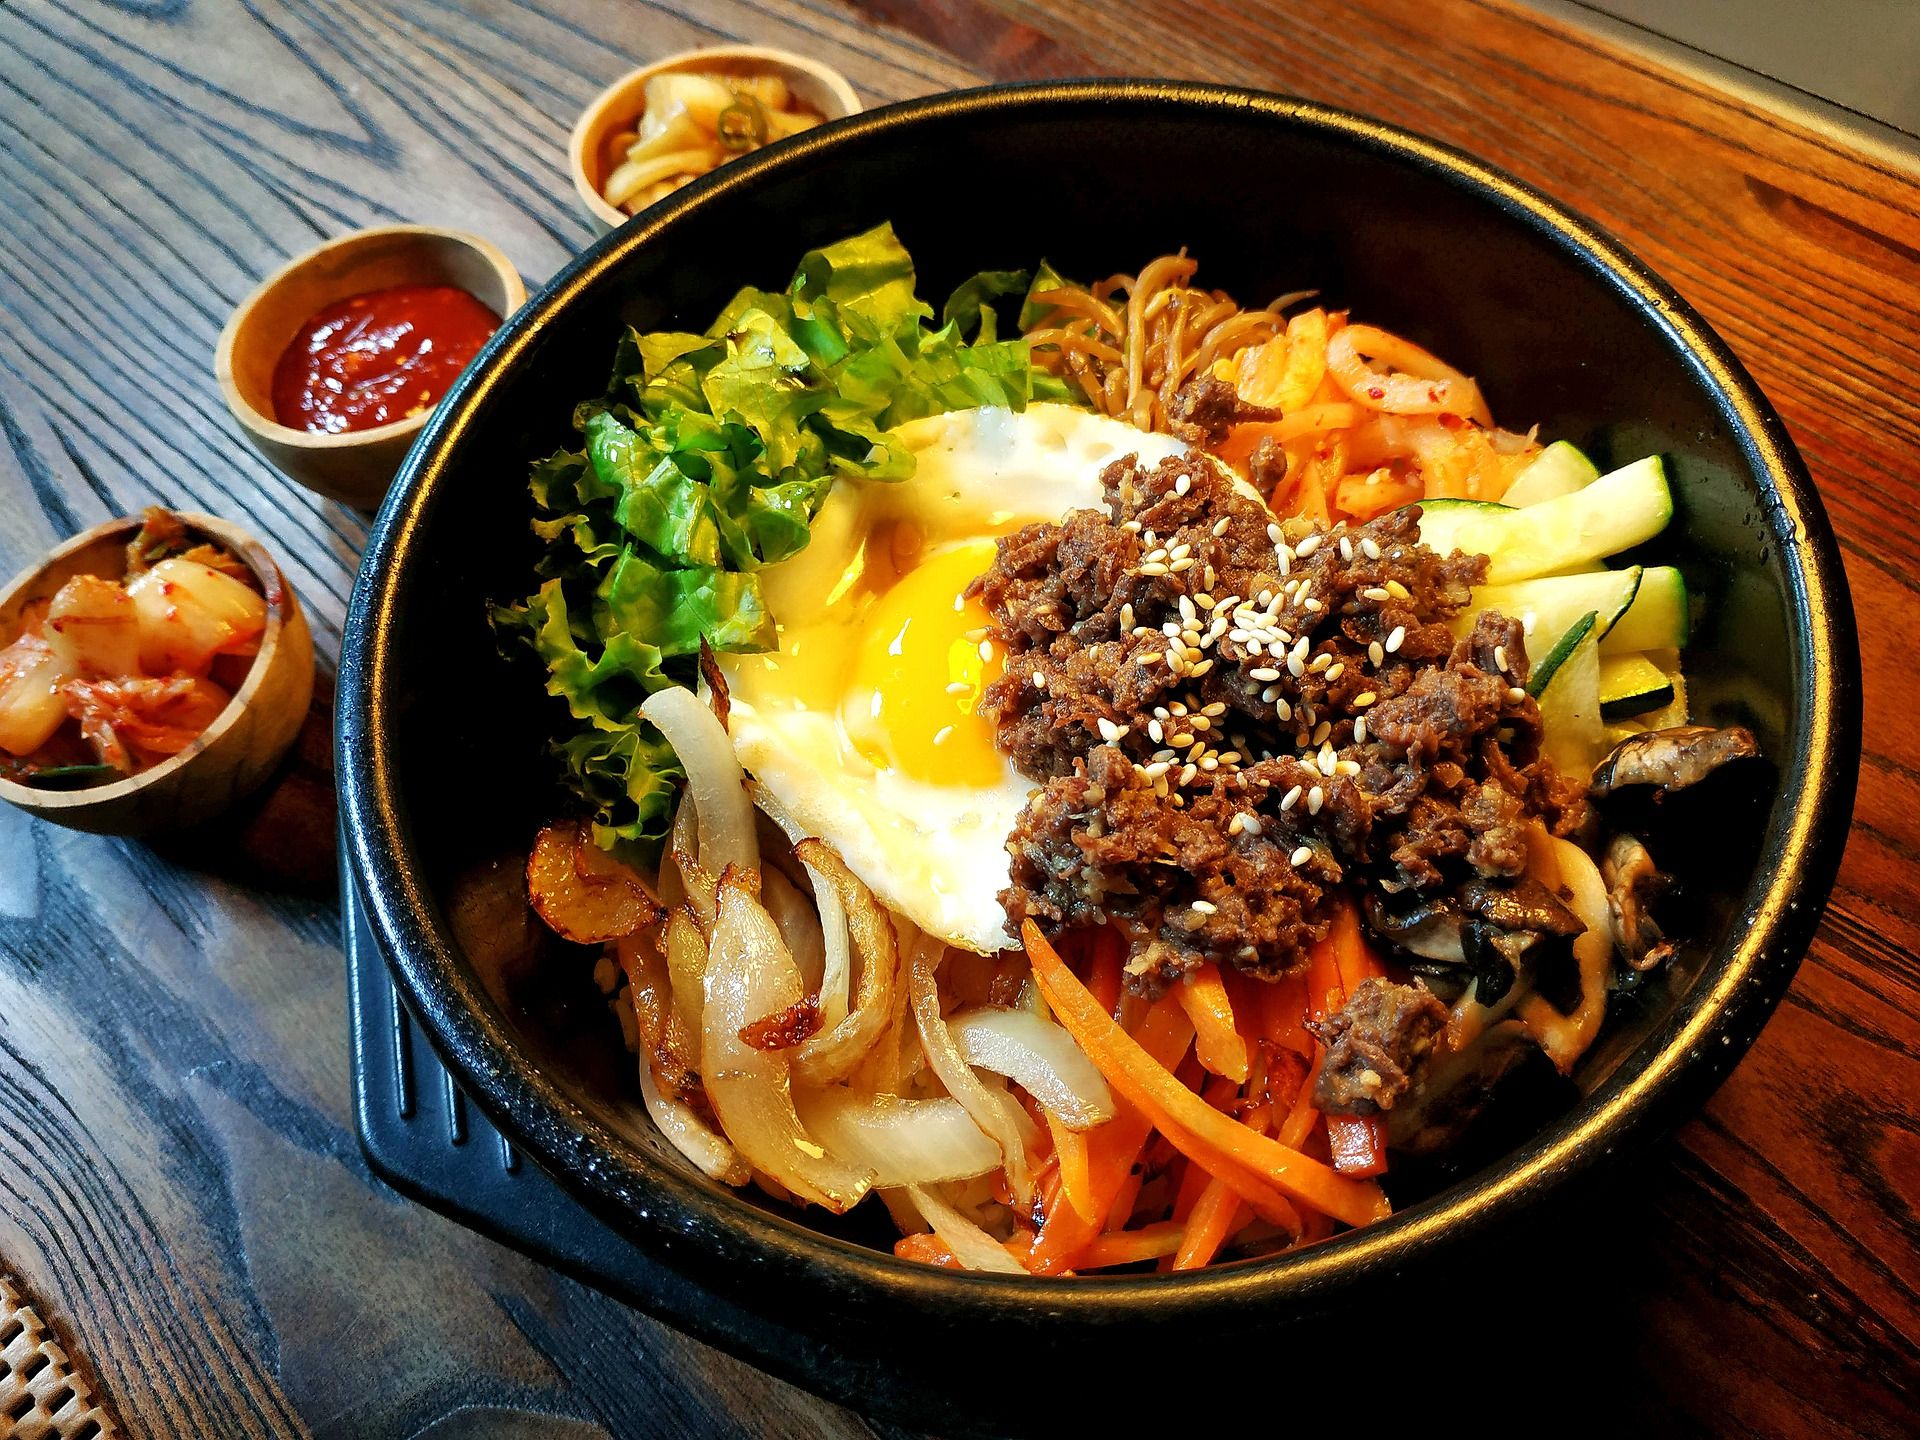 What To Eat: Popular Rice Dishes Around The World